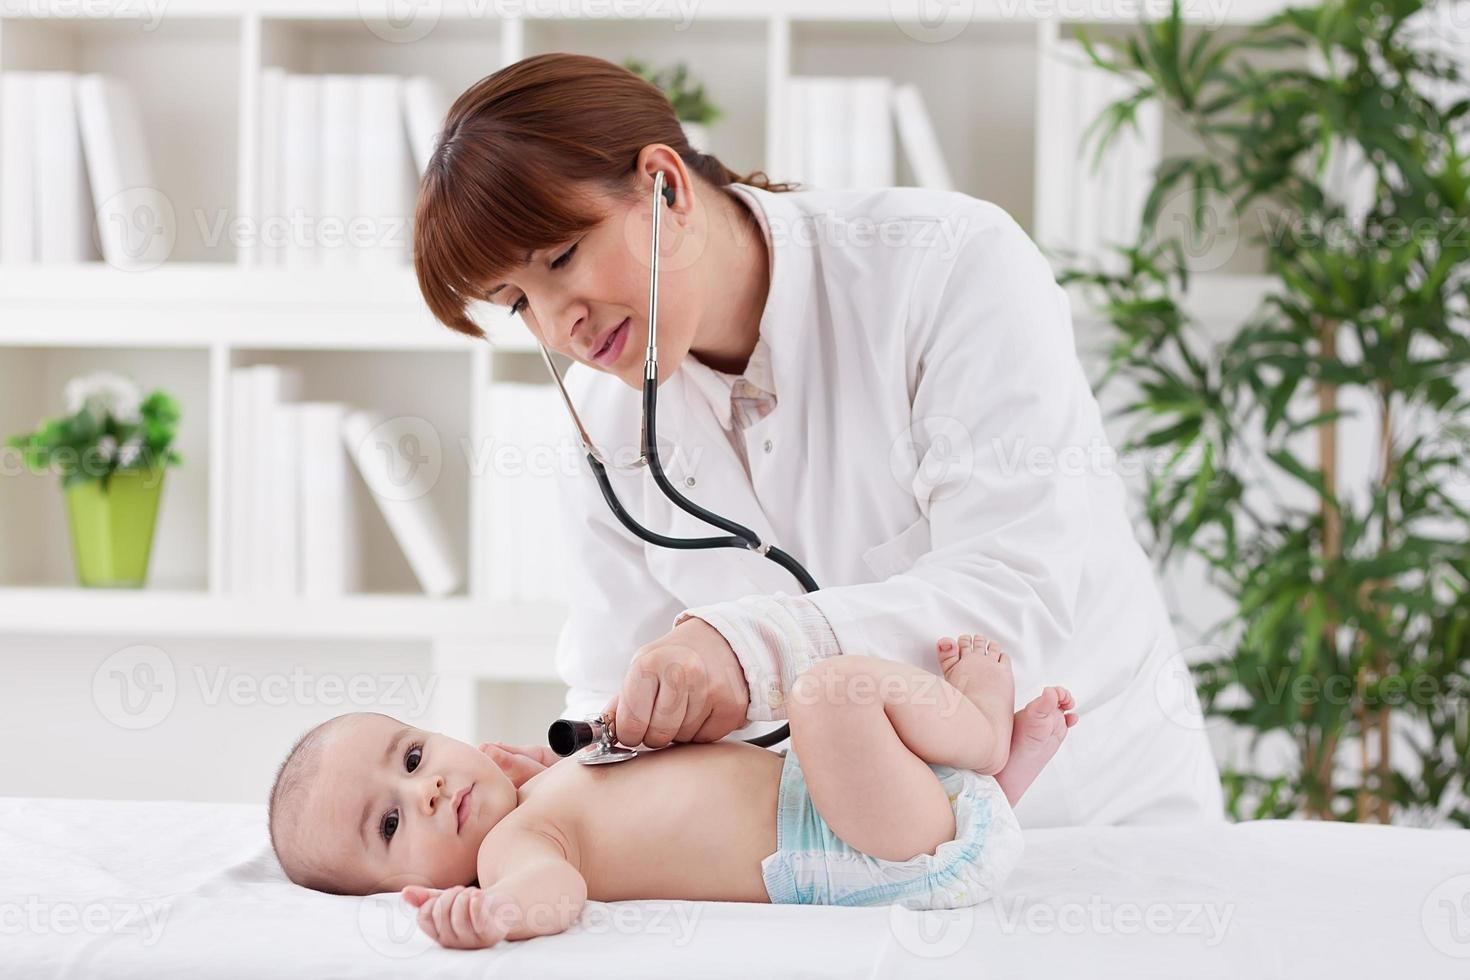 Young doctor female examining a baby patient photo